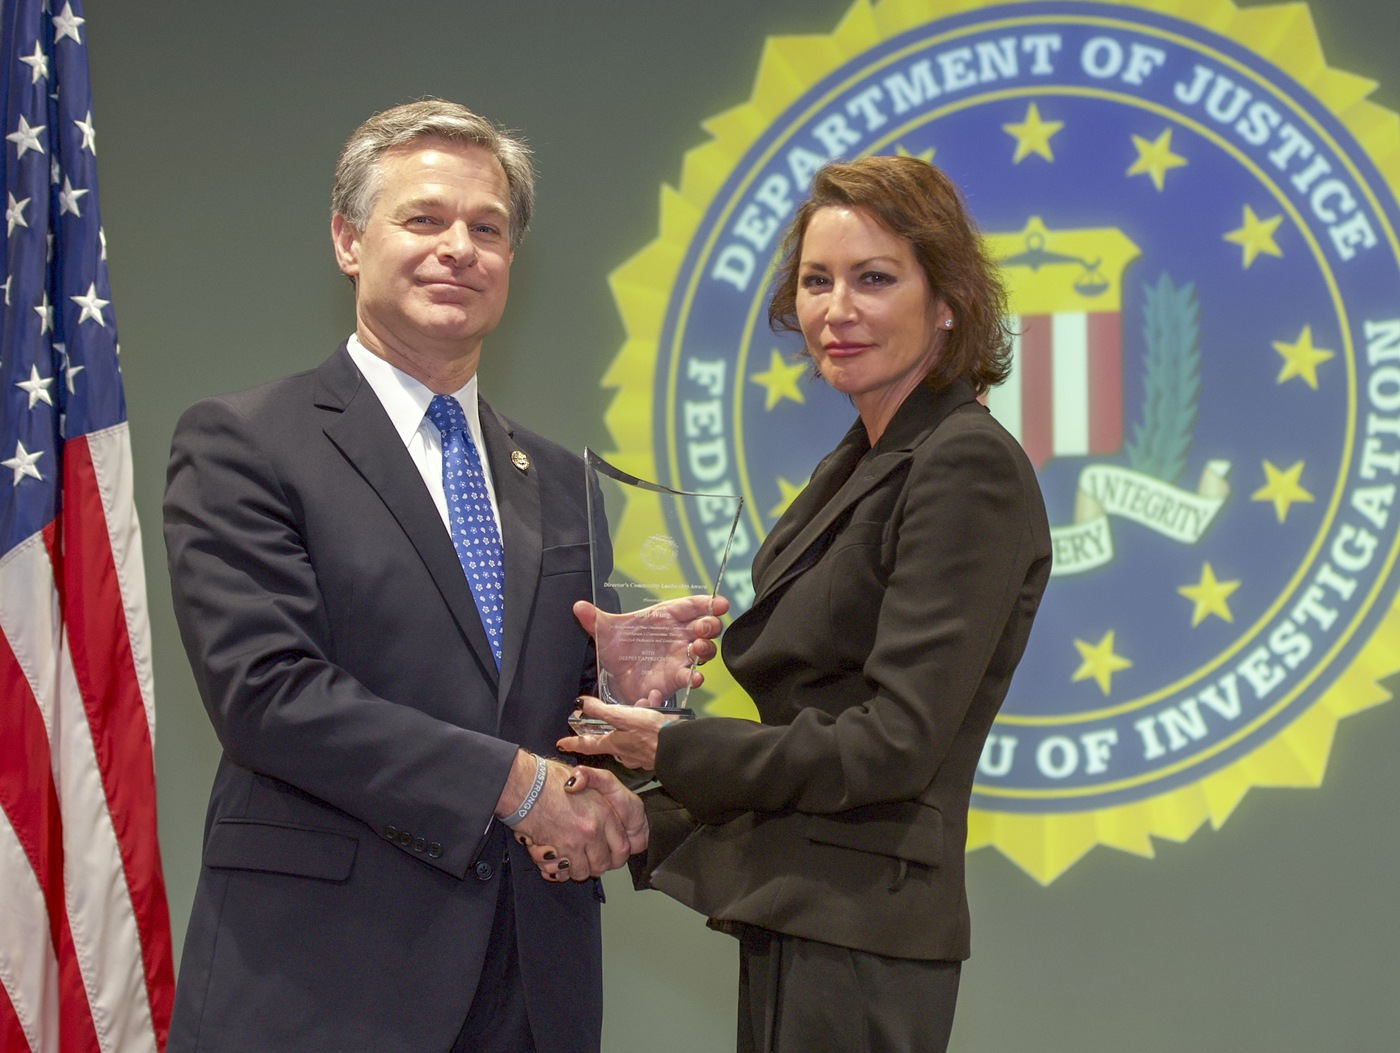 FBI Director Christopher Wray presents Los Angeles Division recipient Jodi Wing with the Director's Community Leadership Award (DCLA) at a ceremony at FBI Headquarters on May 3, 2019.